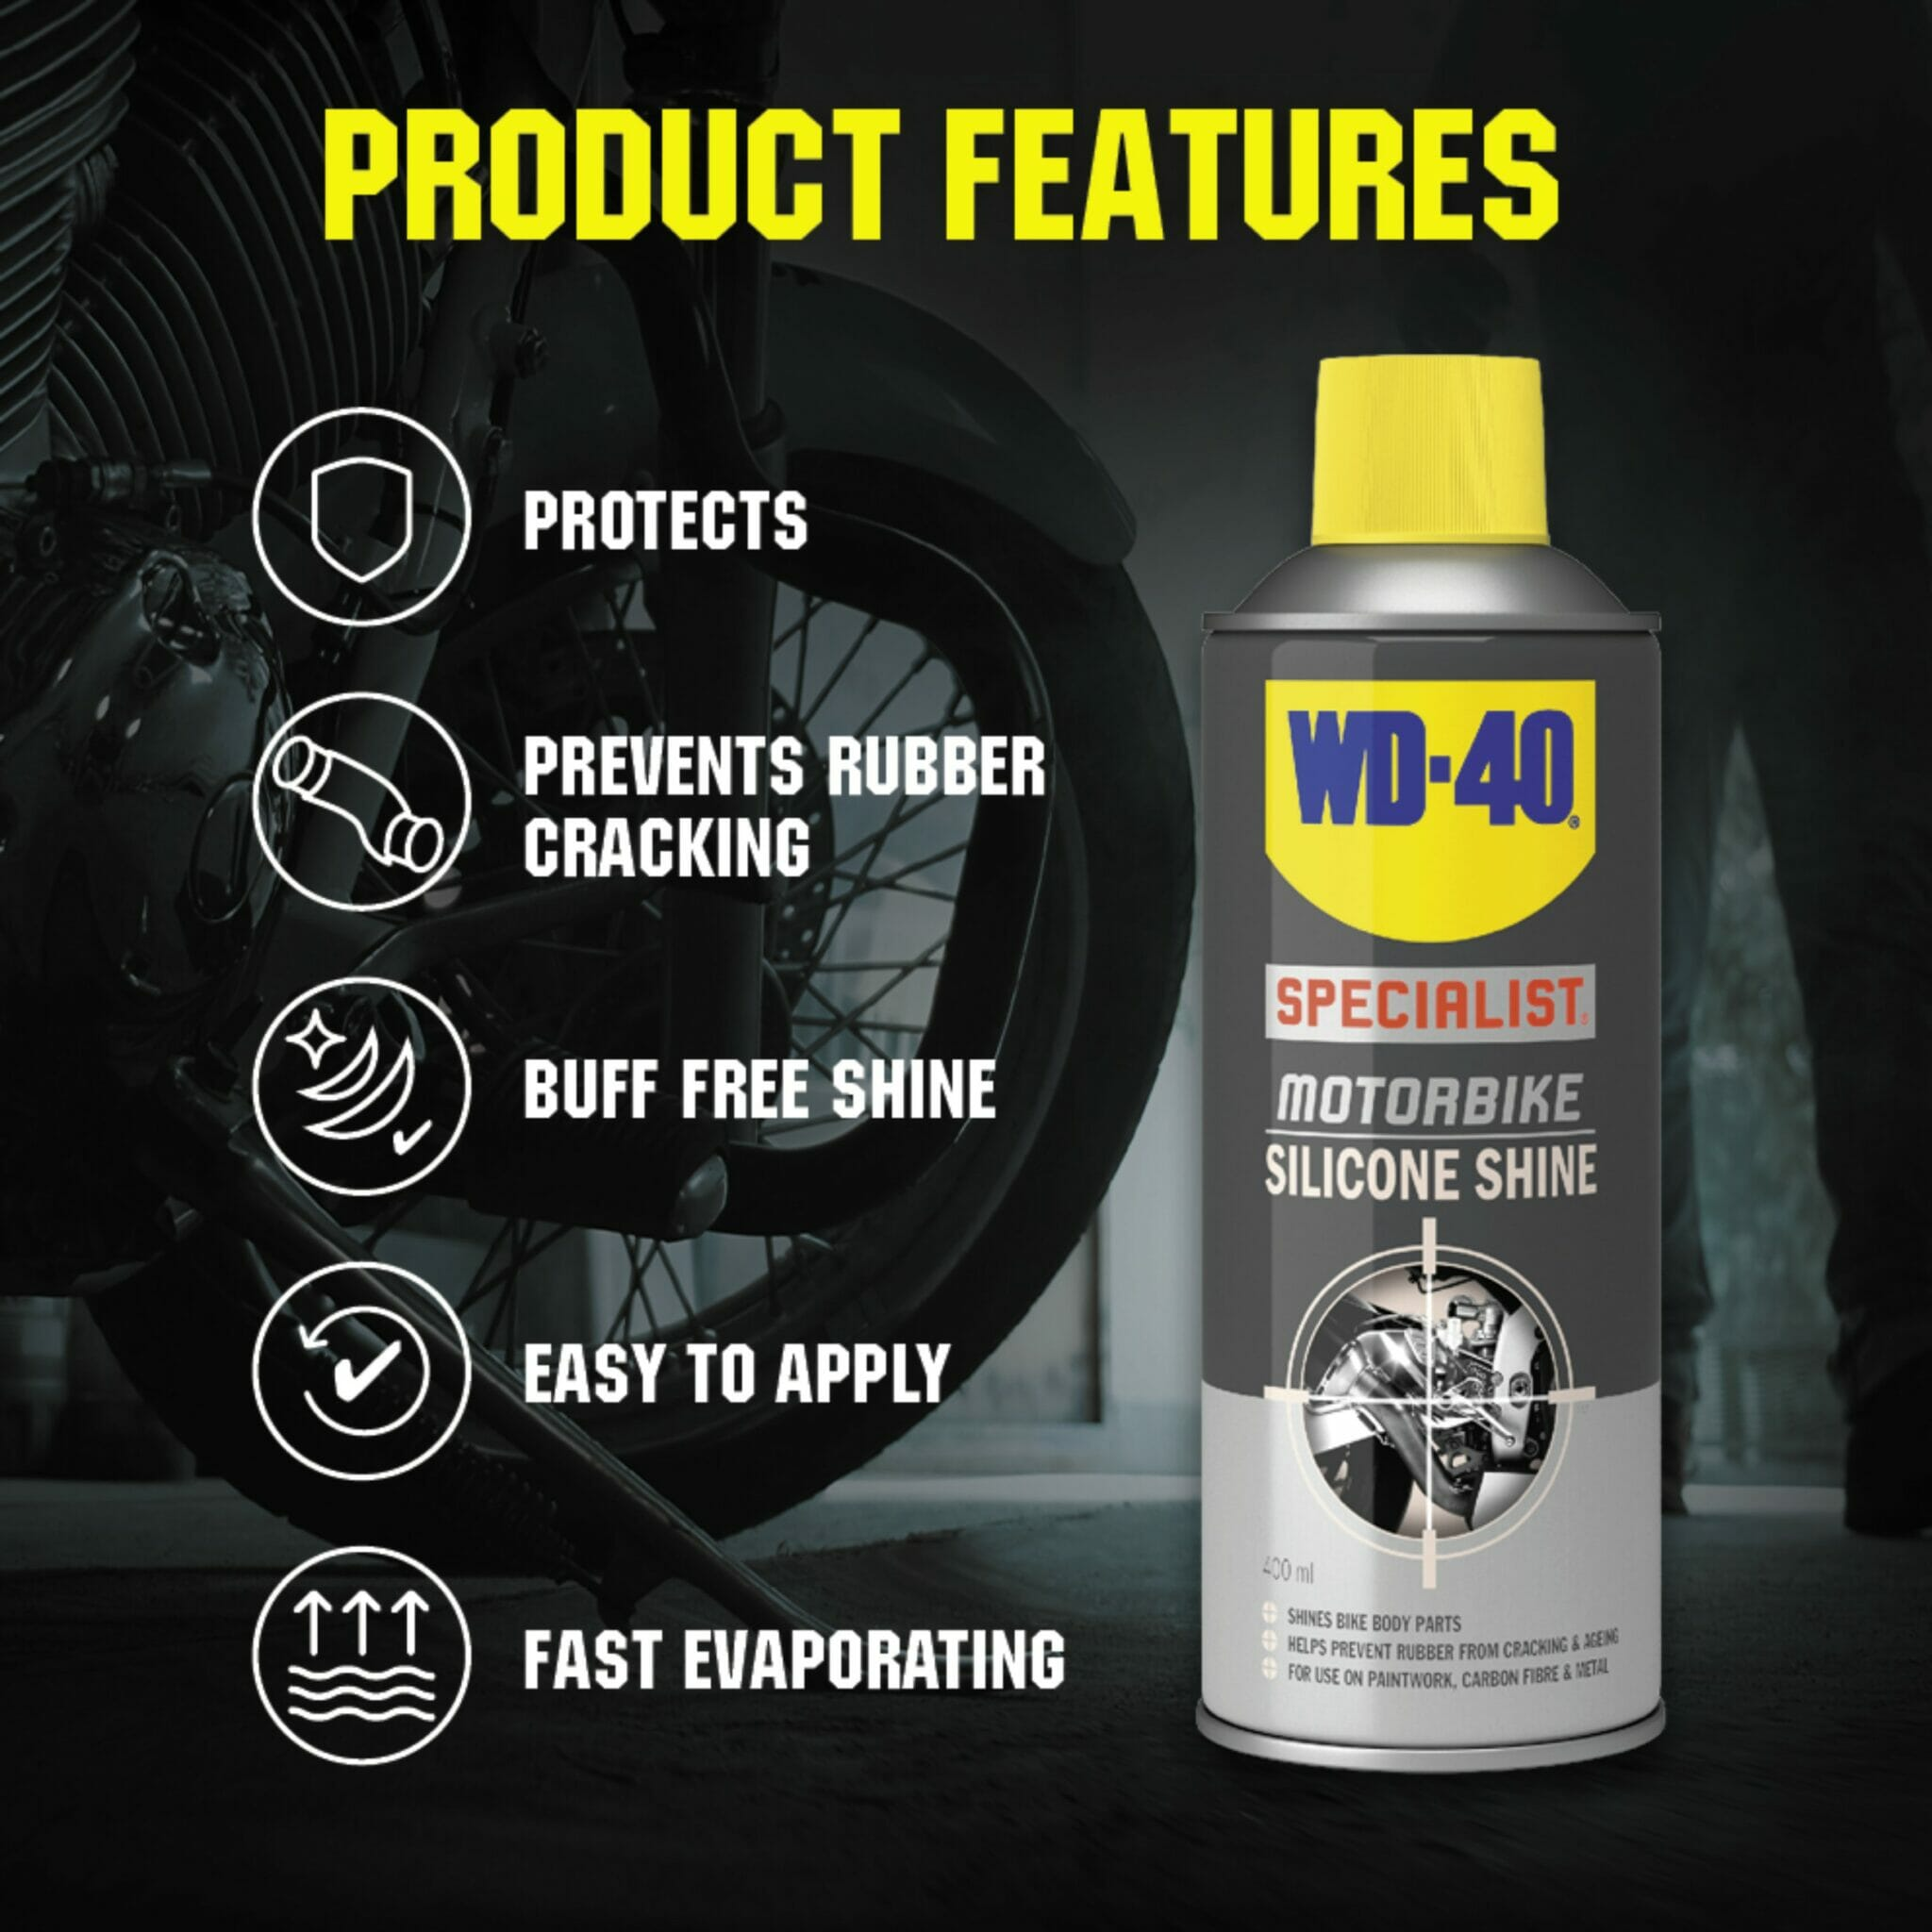 uk wd40 specialist motorbike silicone shine 400ml product features lifestyle background